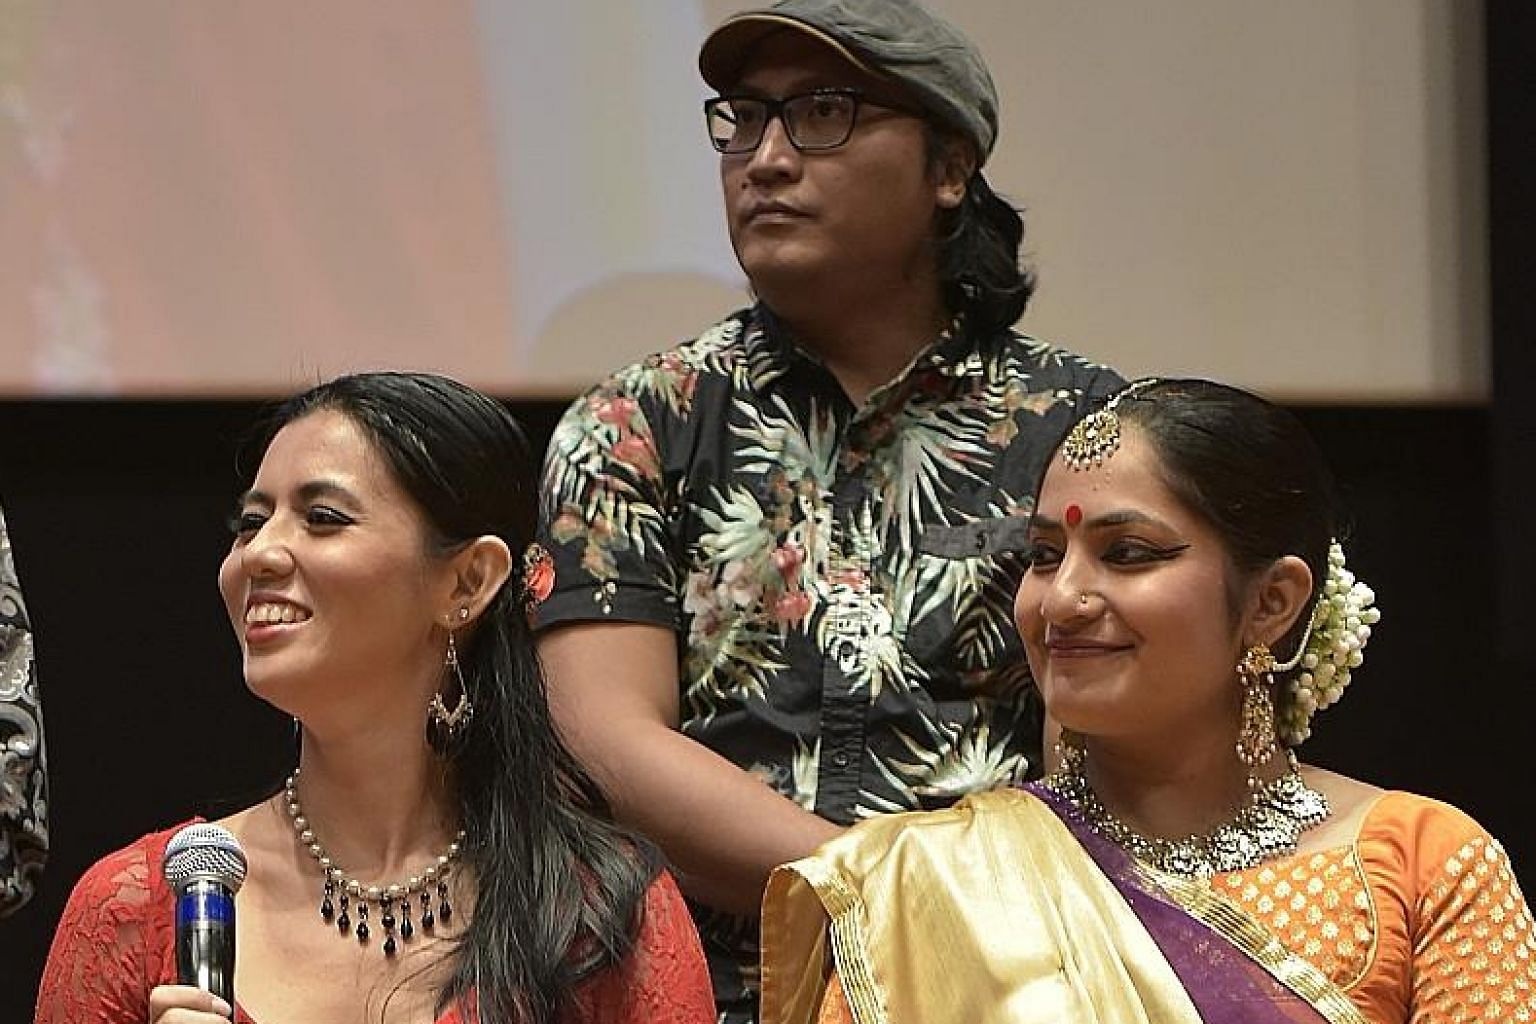 (From far left) Daphne Huang, Firmann Salim and Ponnamma Devaiah are among the artists who will be performing at the Singapore Night Festival.